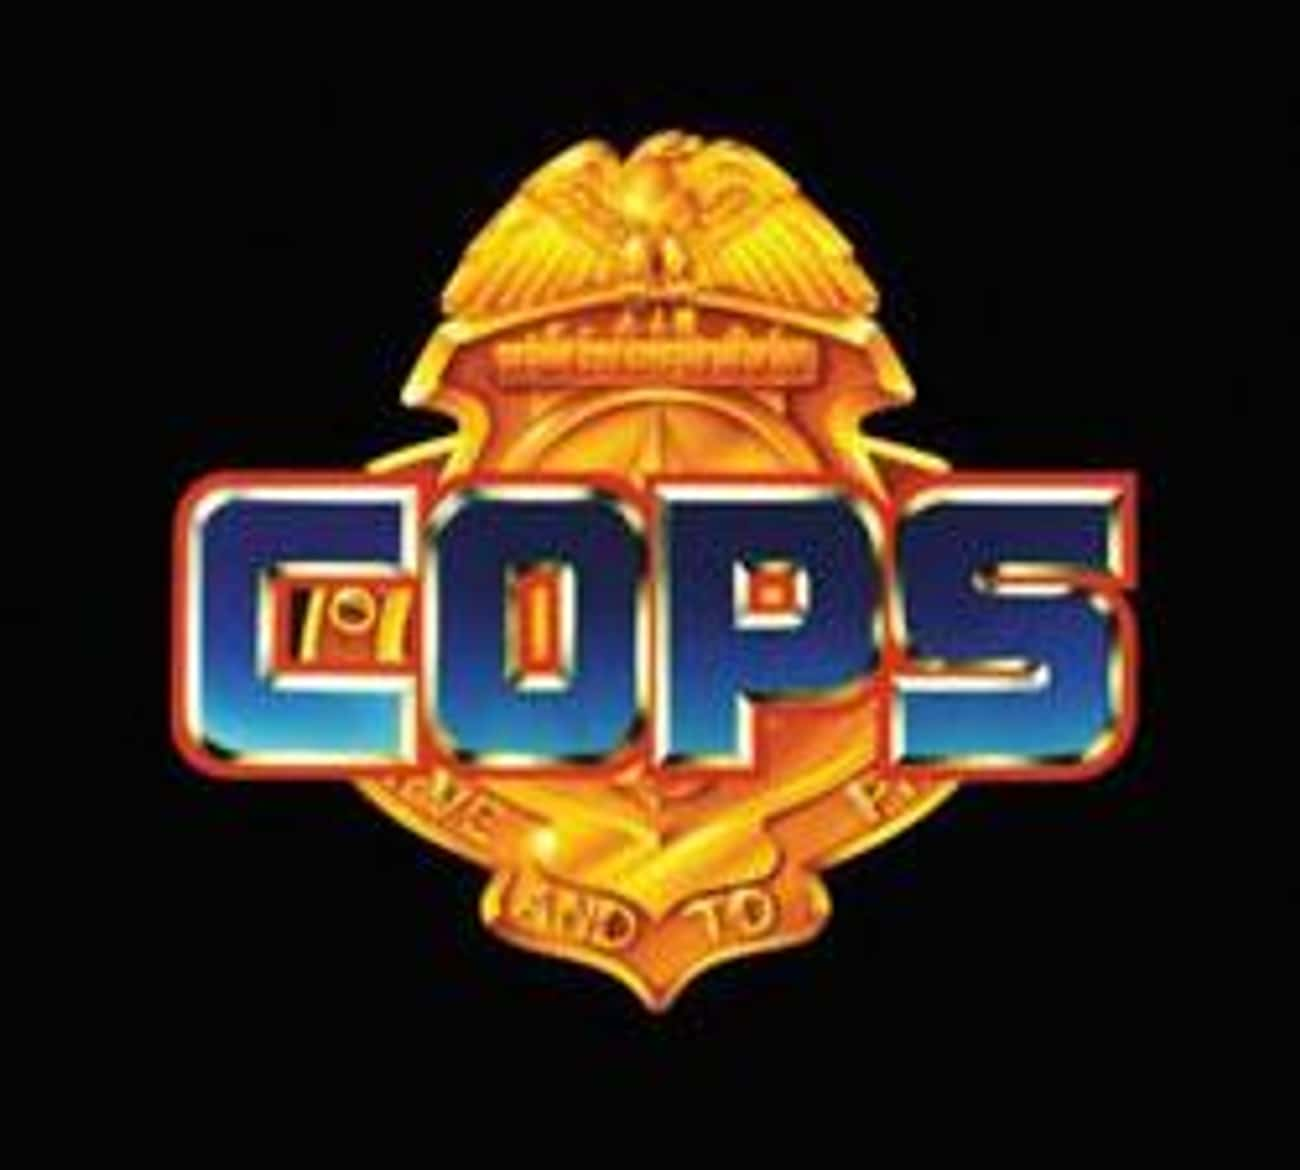 C.O.P.S. is listed (or ranked) 1 on the list Hasbro Shows and TV Series